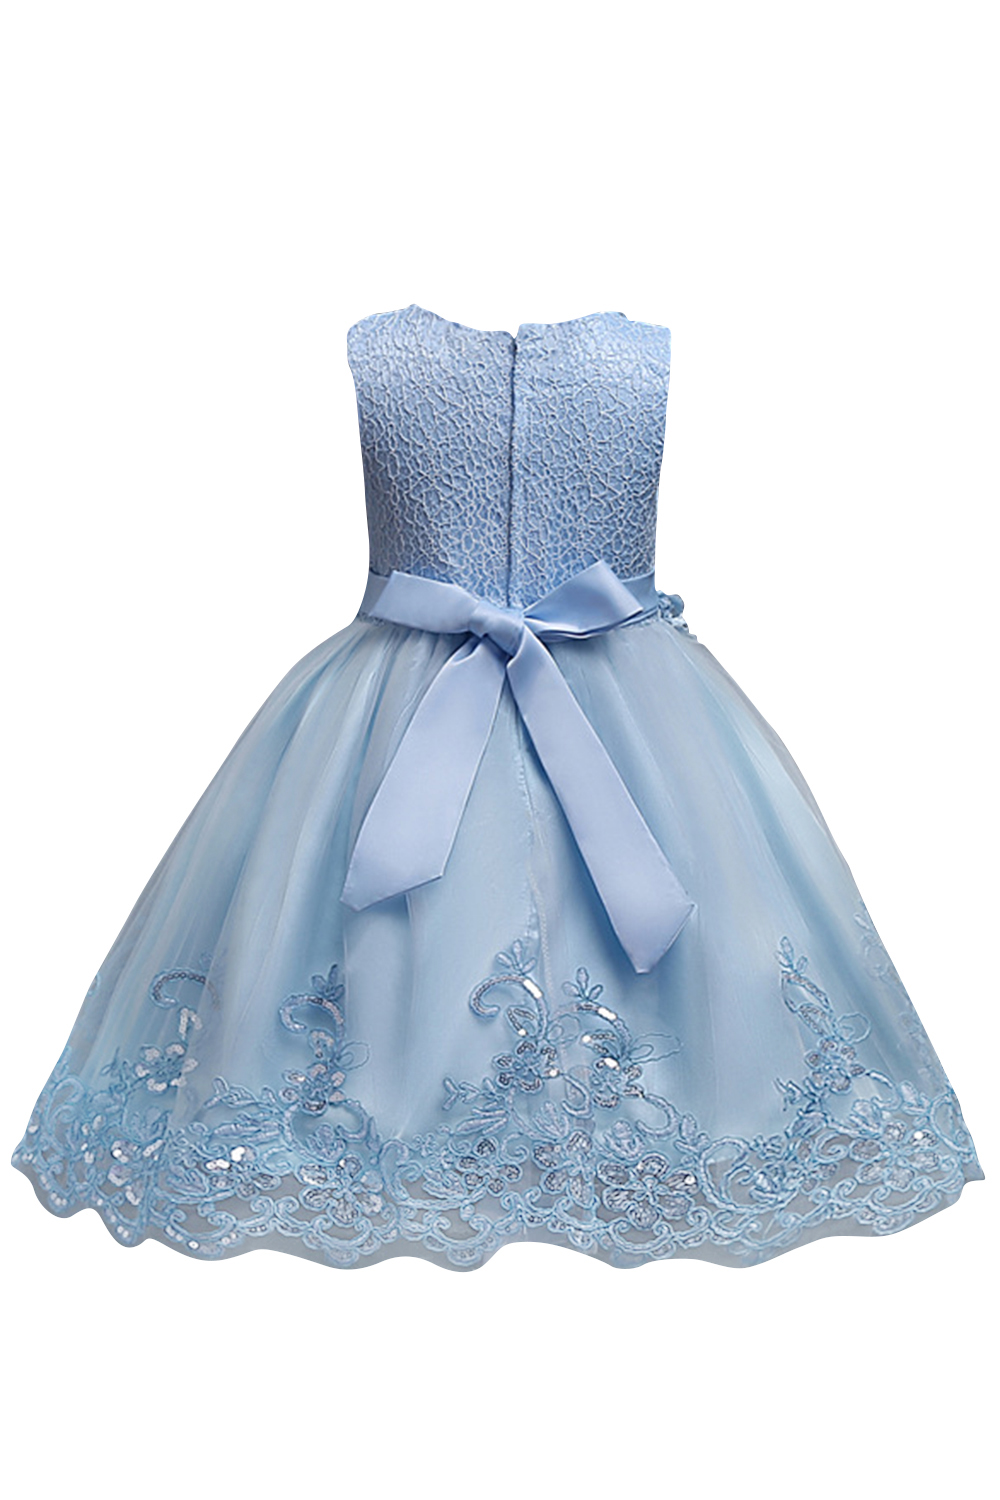 Pears Princess Girls Christmas Birthday Party Dresses Light Blue ...